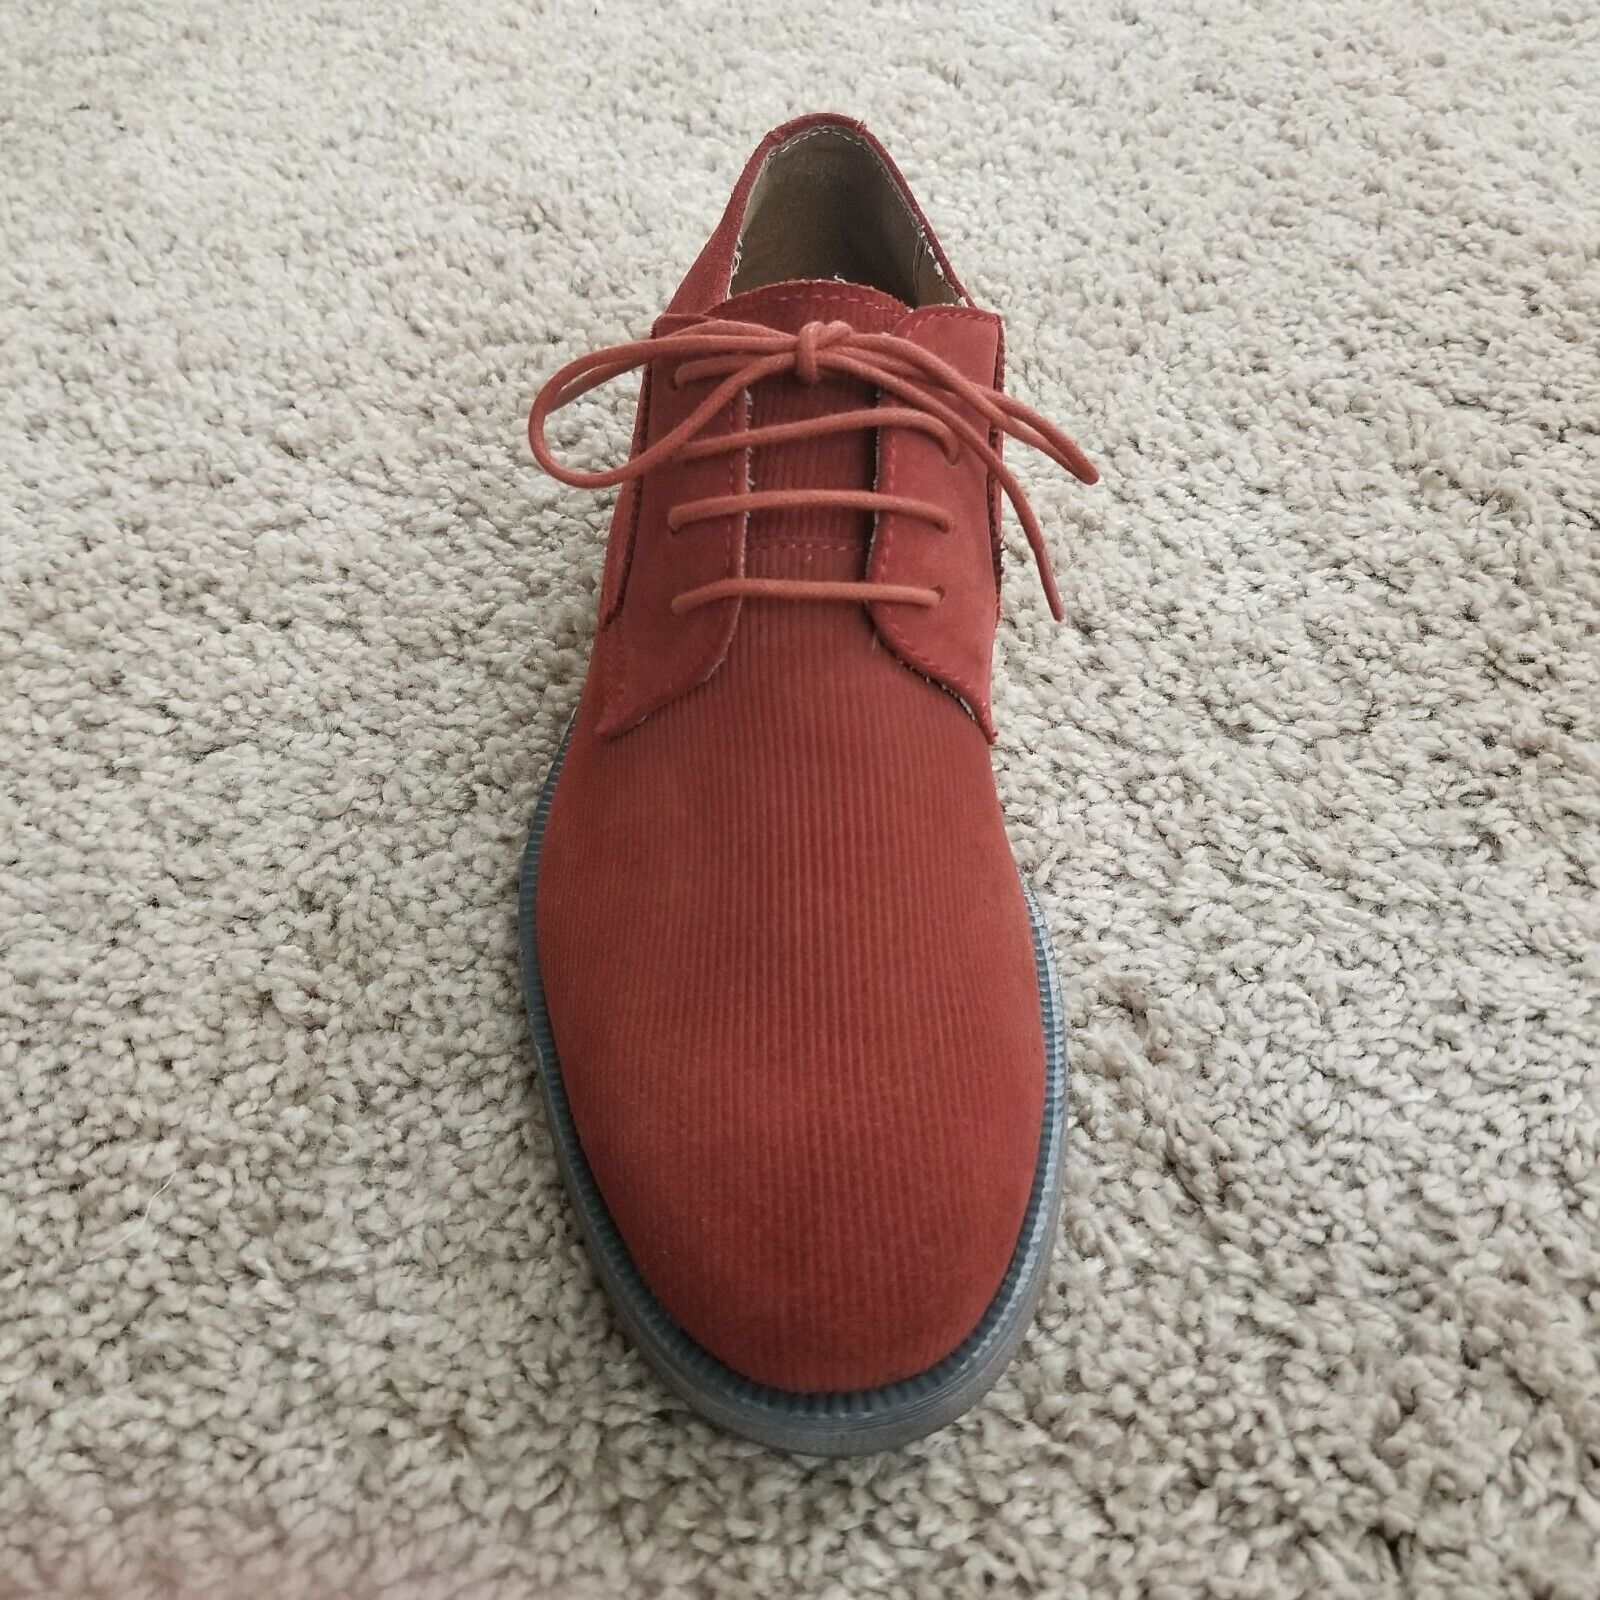 Stacy Adams Men's Dress shoes Corday Oxford Paprika Suede 24980-808 size 9 M